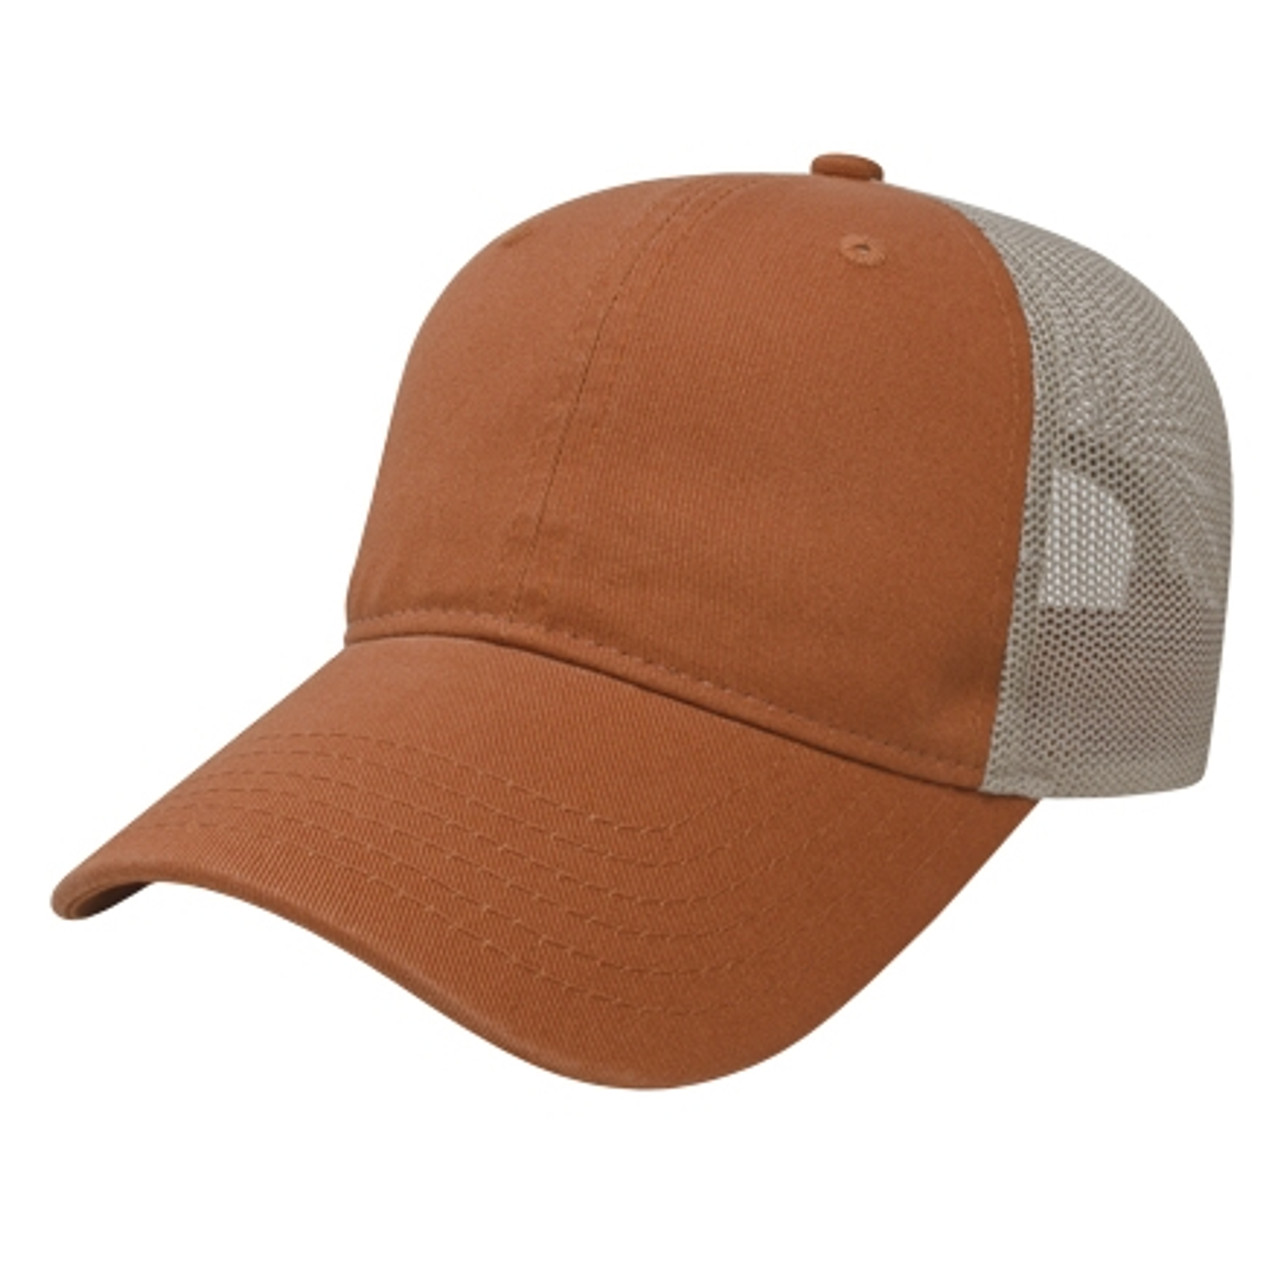 Embroidered Washed Chino Twill, Unstructured Soft Mesh Back Hat